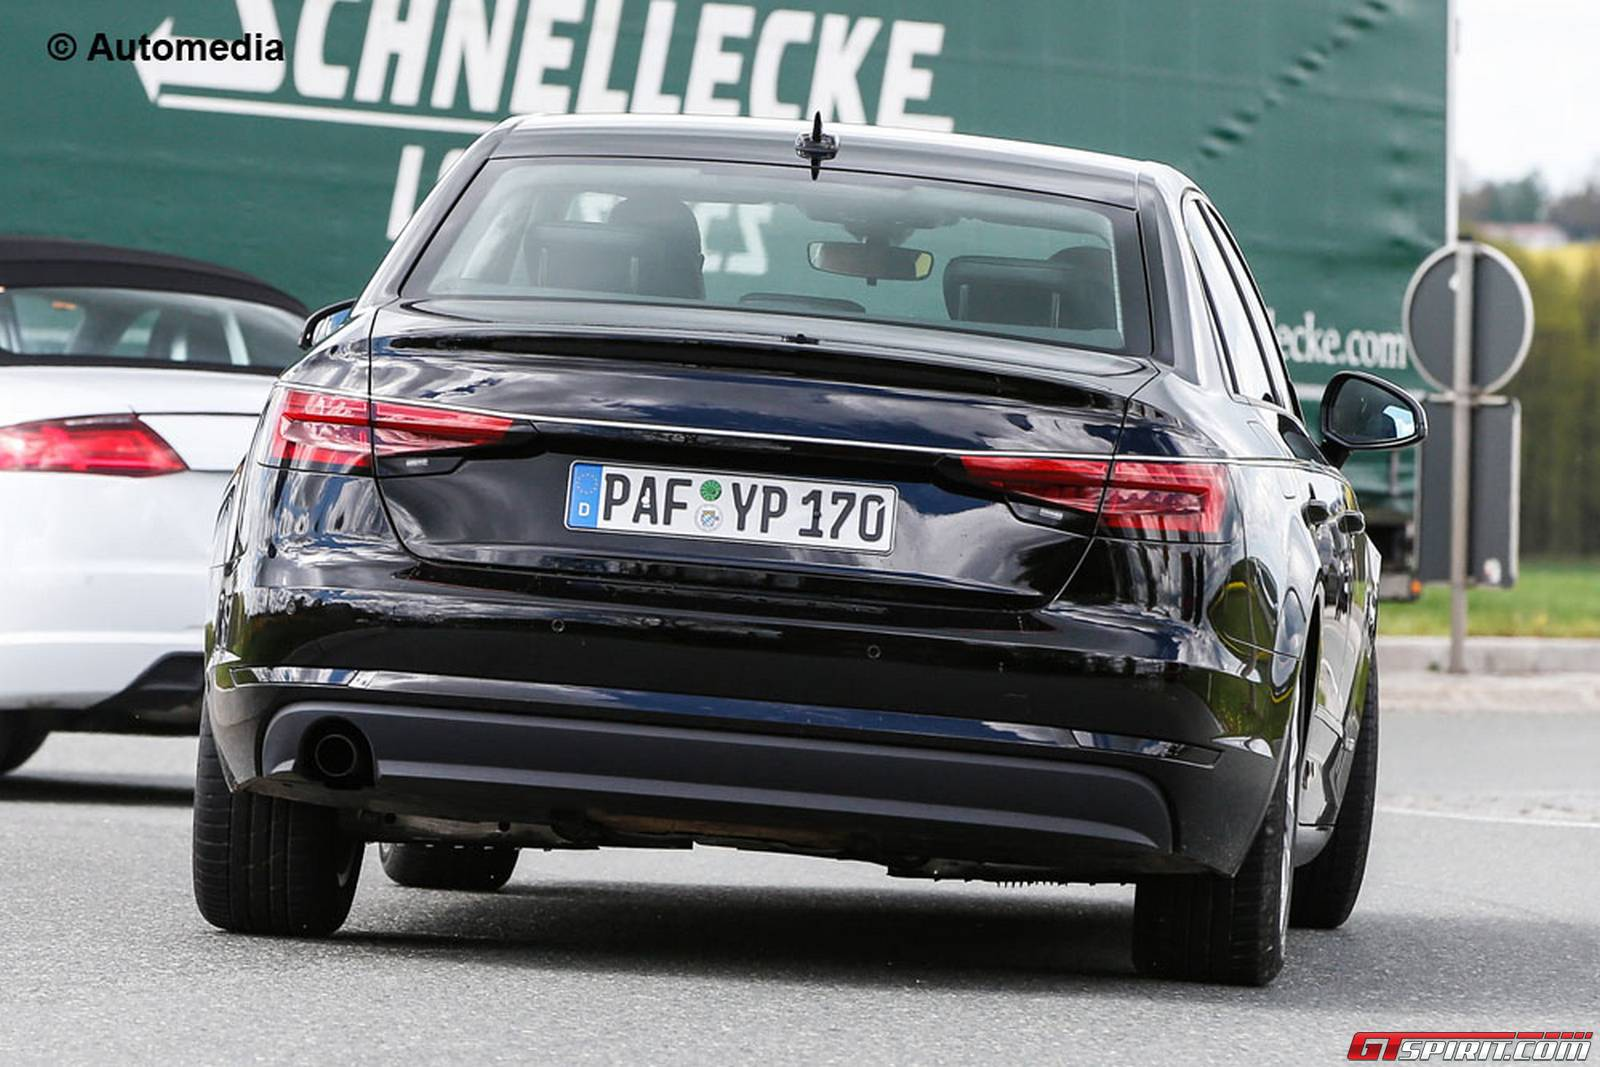 2017 Audi A4 Spy Shots w/ Very Little Camo - AudiWorld Forums